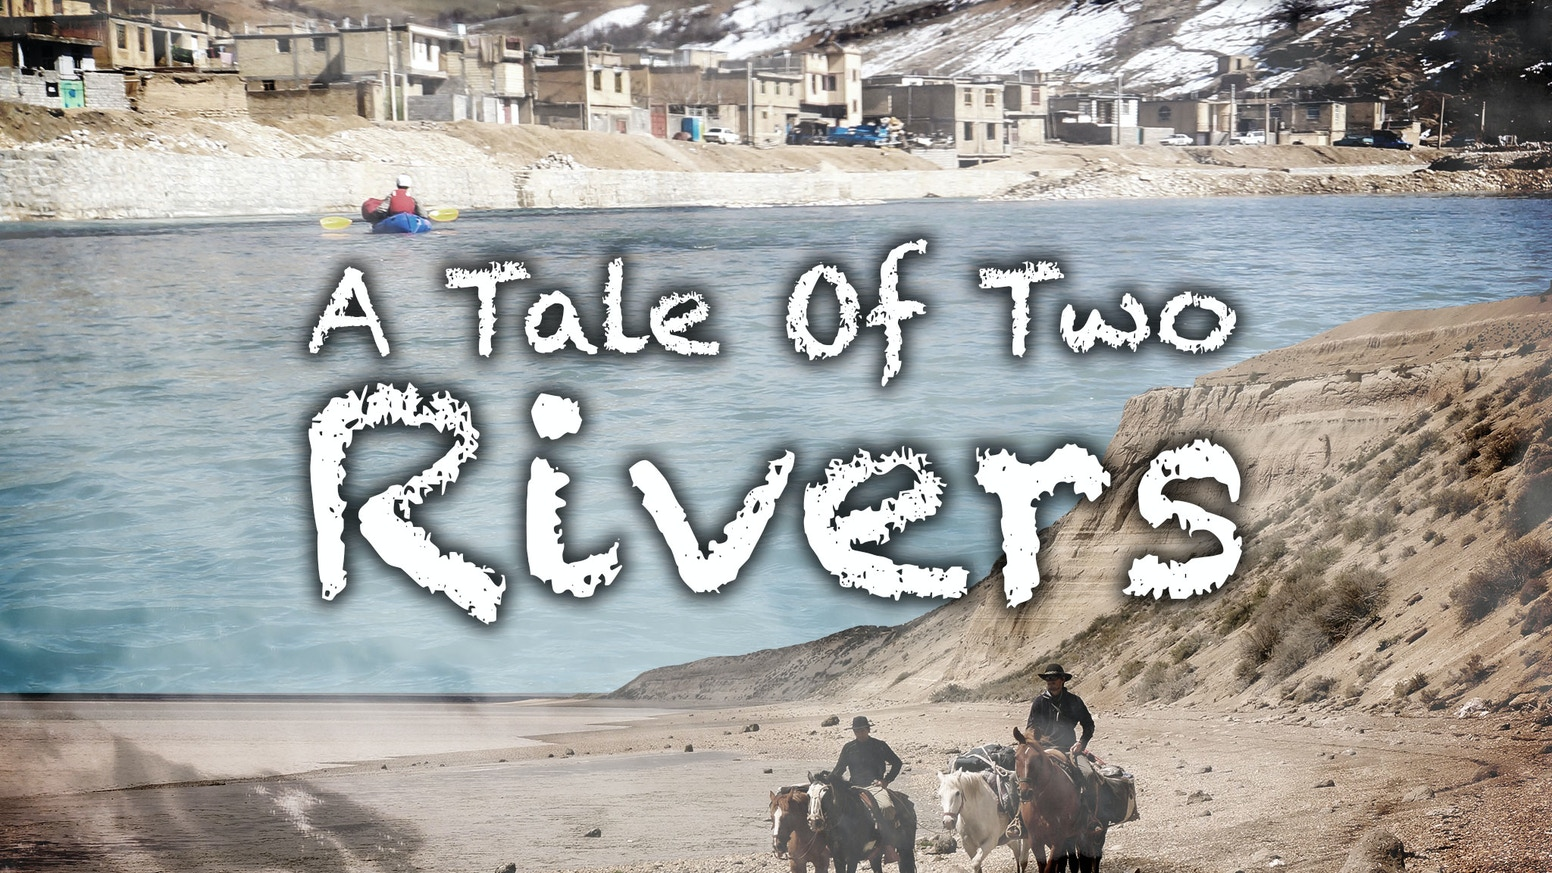 In 2014, two filmmakers followed wilderness rivers through Iran and Patagonia. This project produced two feature-length adventure films, painting portraits of two very different corners of the Earth.